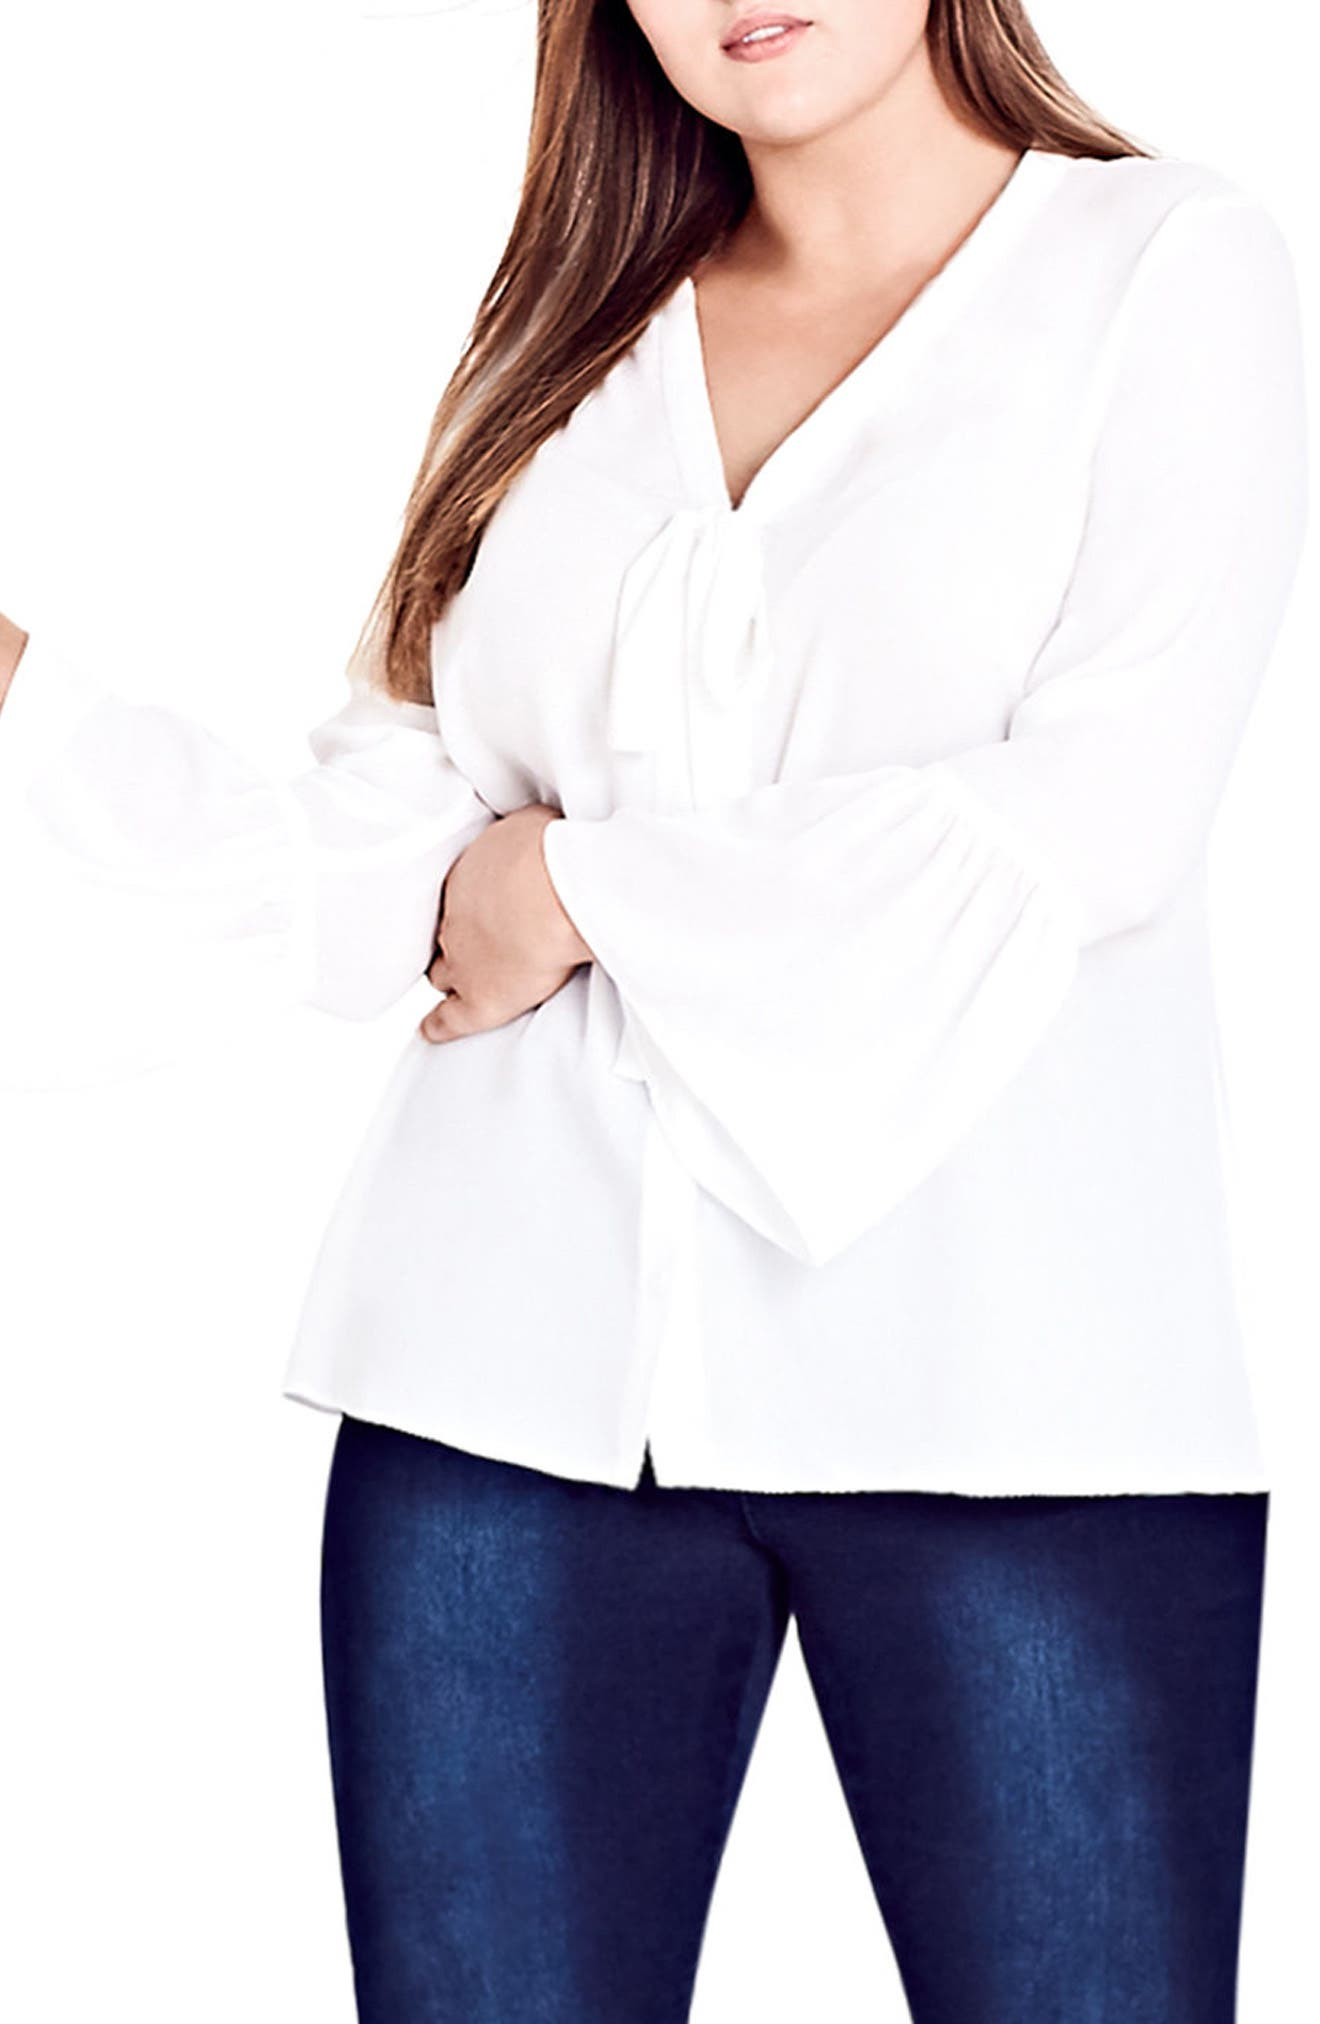 Alternate Image 1 Selected - City Chic Office Fling Shirt (Plus Size)